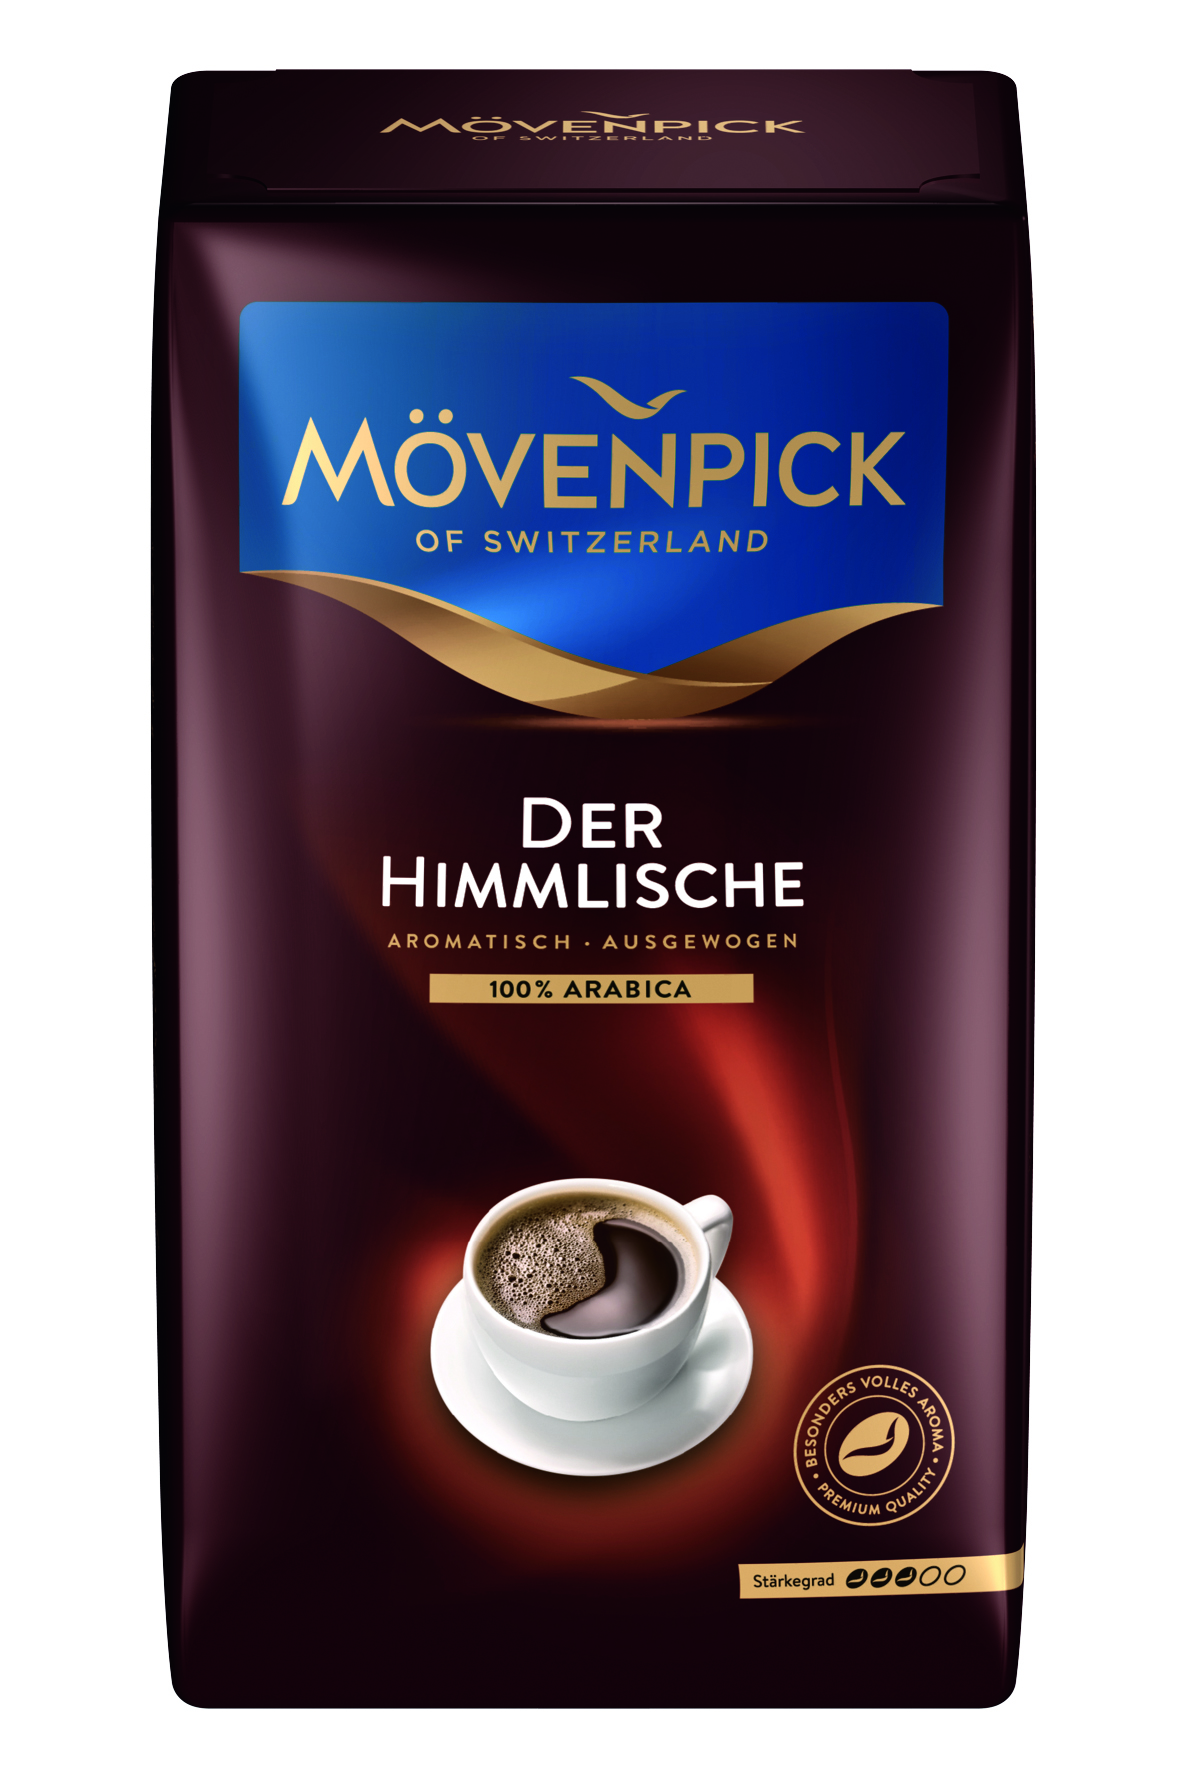 MÖVENPICK of Switzerland mletá 250g